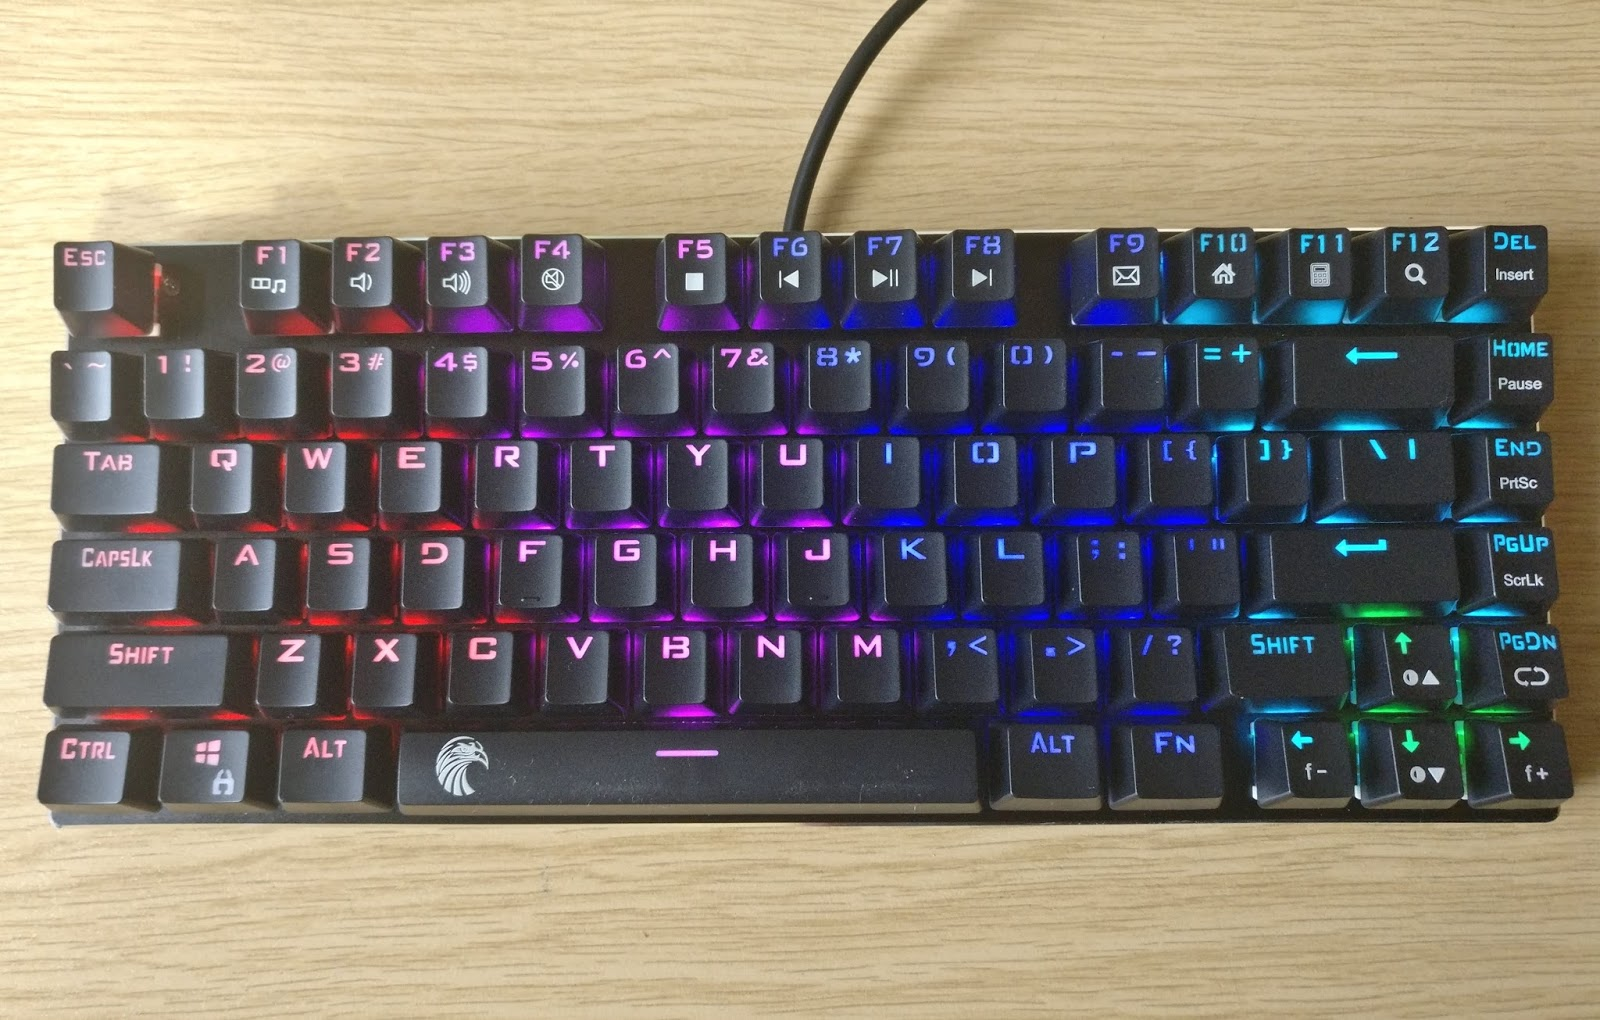 efc4c44c2dd This is a review for: Tenkeyless Mechanical Keyboard Gaming Small Compact  81 Keys RGB LED Backlit Aluminum Ergonomic Design Tactile and Clicky for  Gamer ...